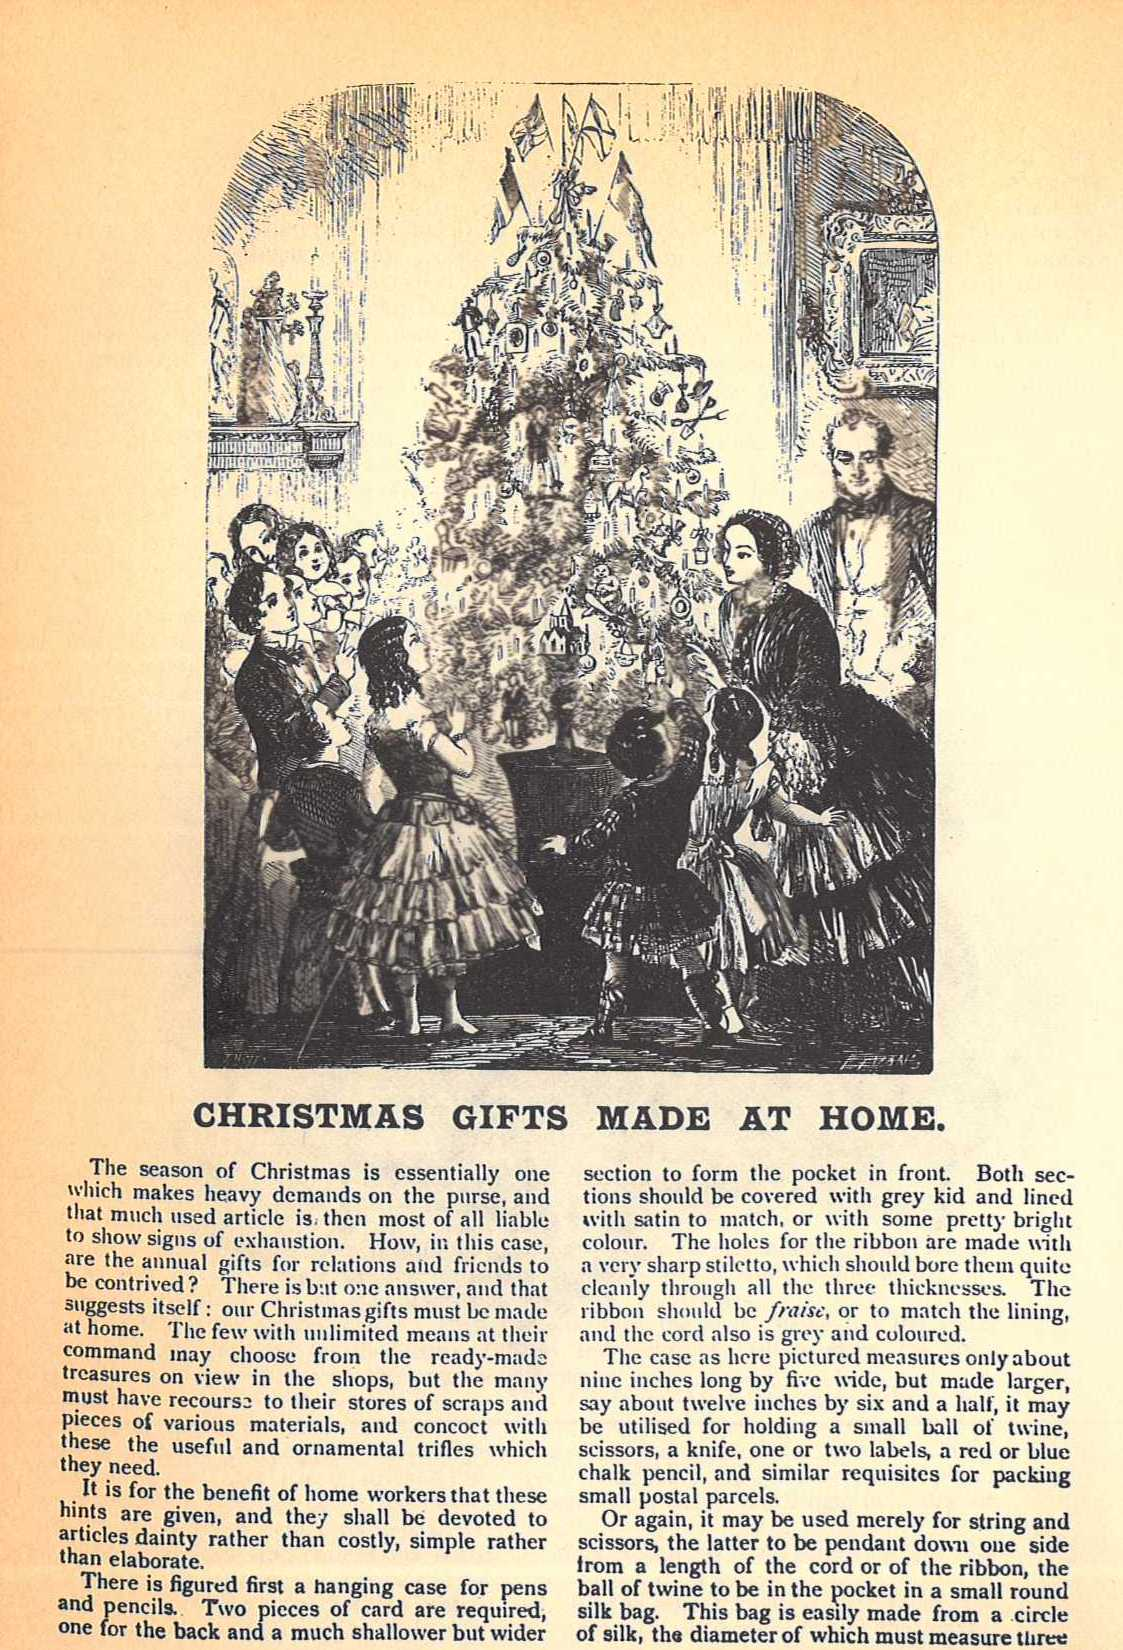 Victorian Christmas Gifts Made at Home | Parenting Patch